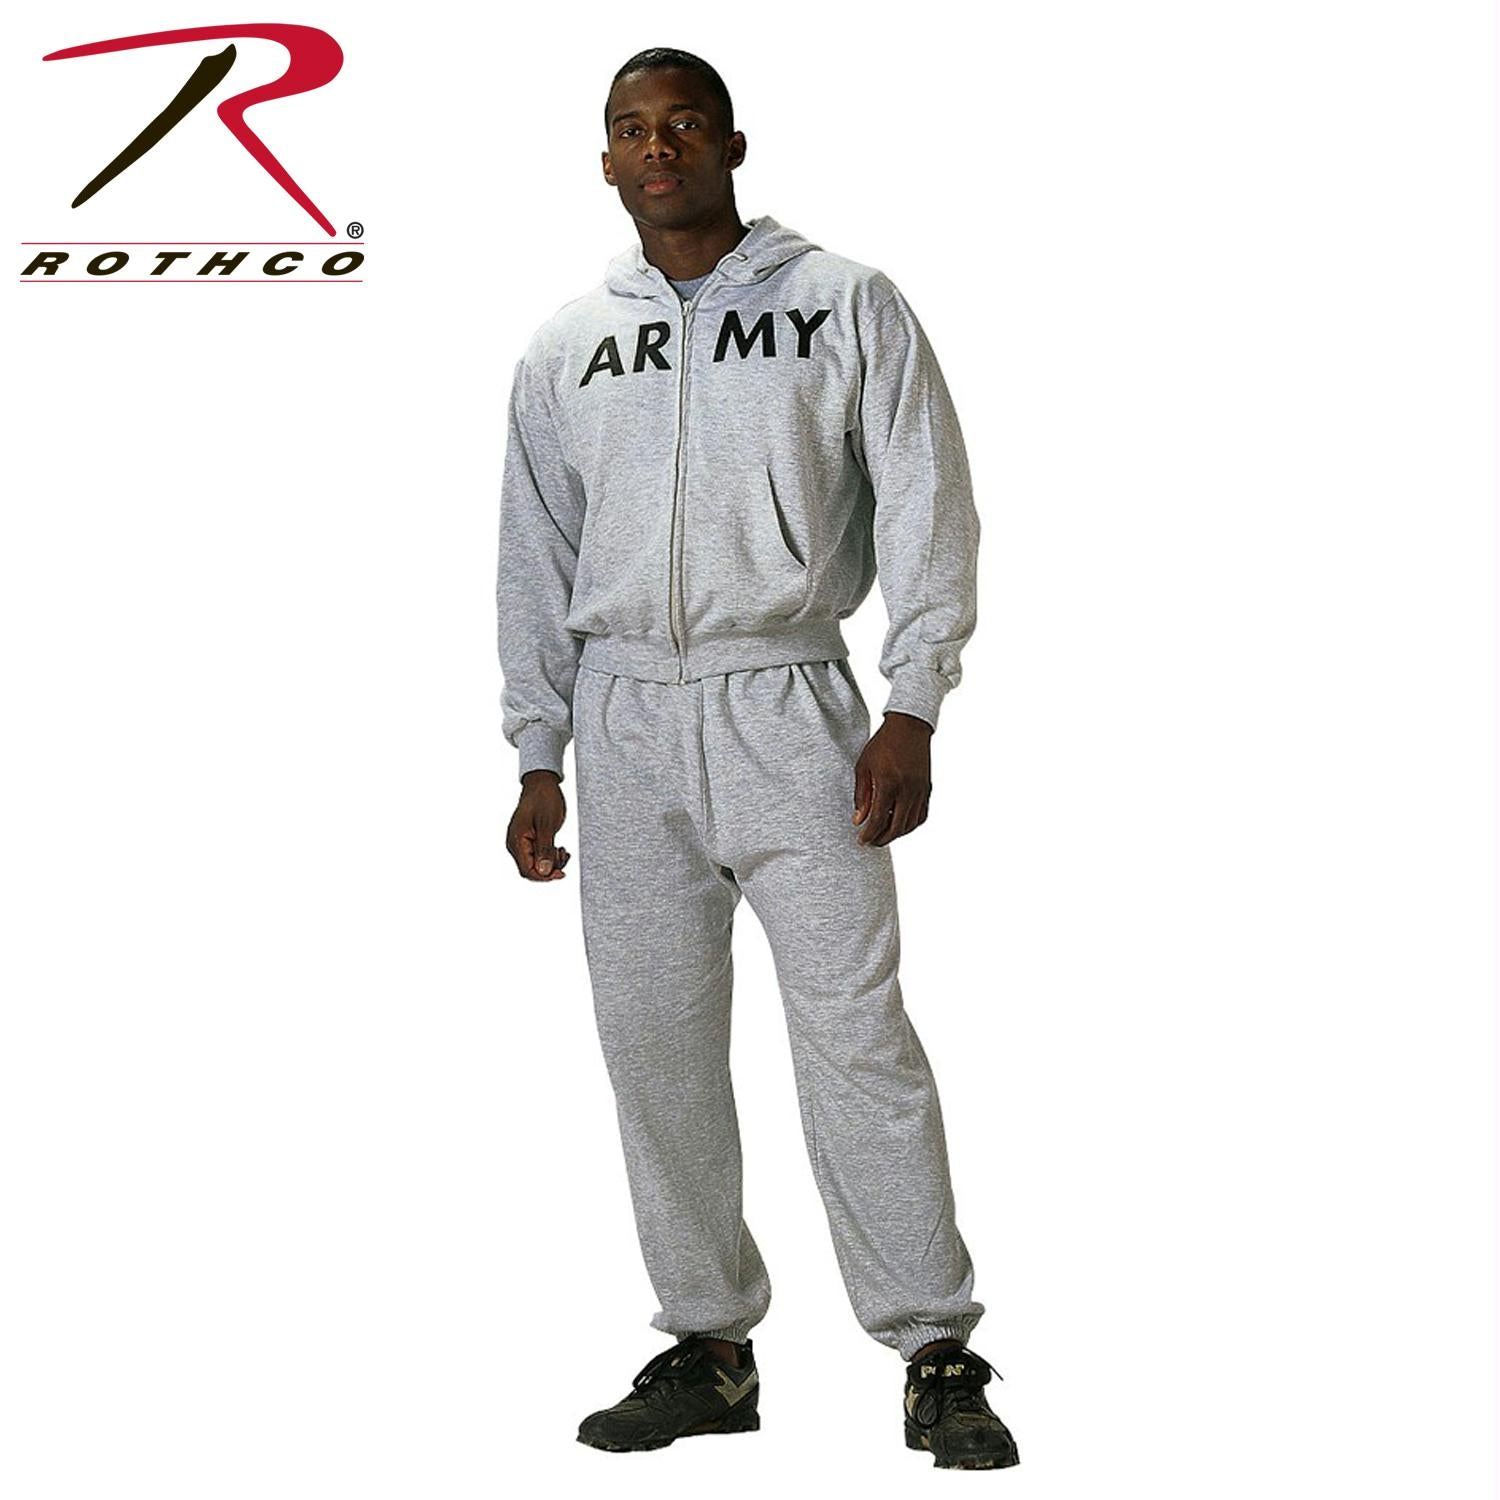 Rothco G.I. Type Physical Training Sweatshirt - S